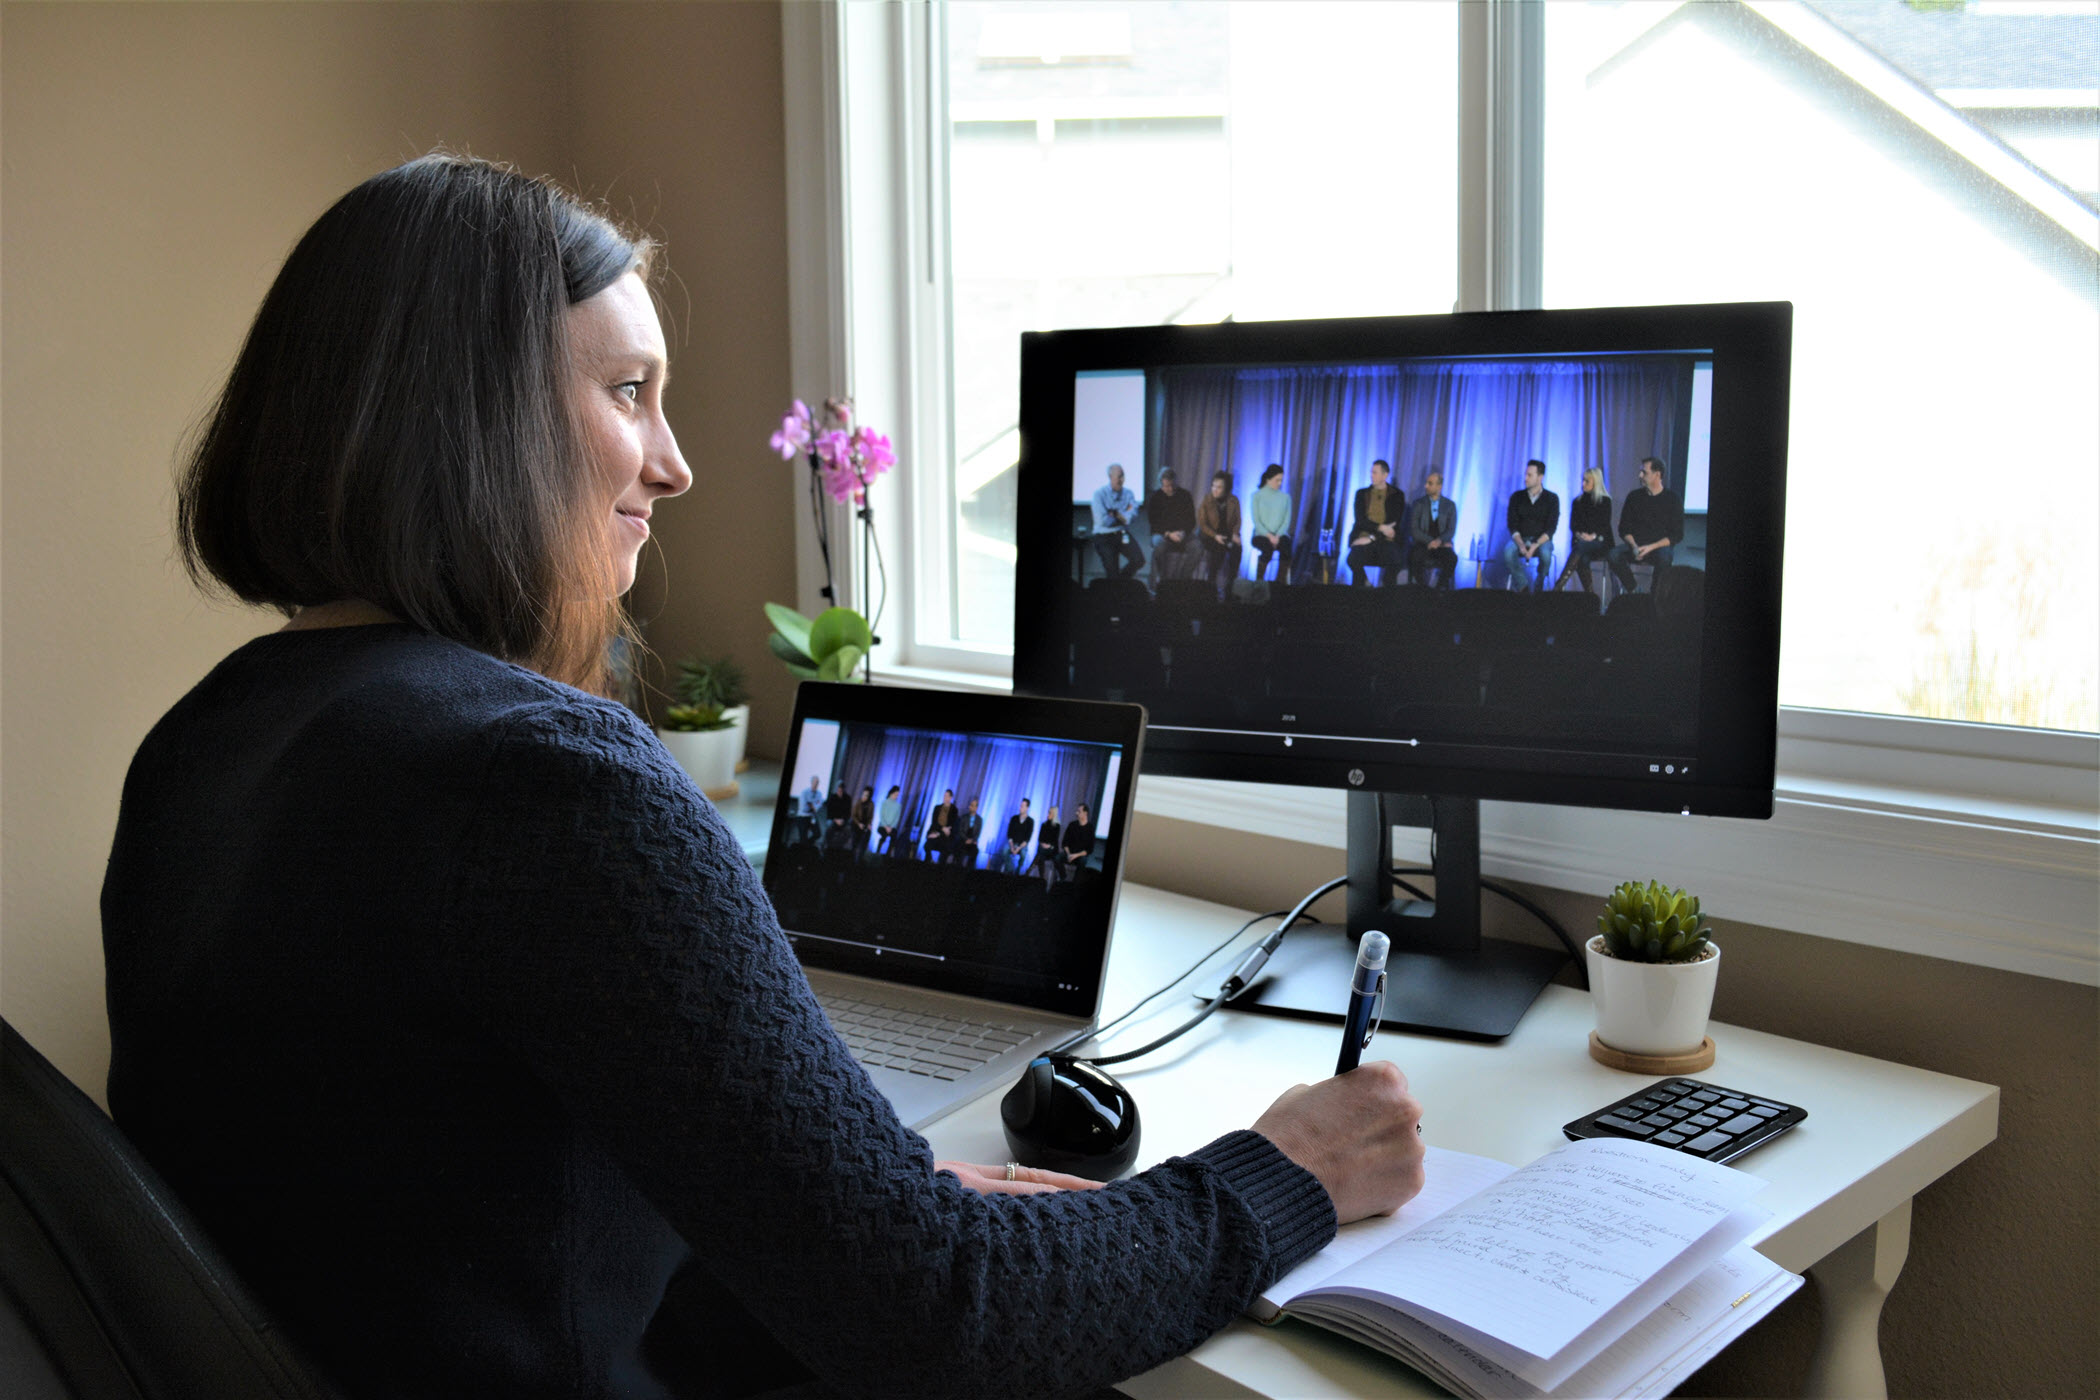 Kimberly Nafziger sits at her desk in her home office. The Ask Me Anything meeting that she's managing is shown on her laptop and monitor.